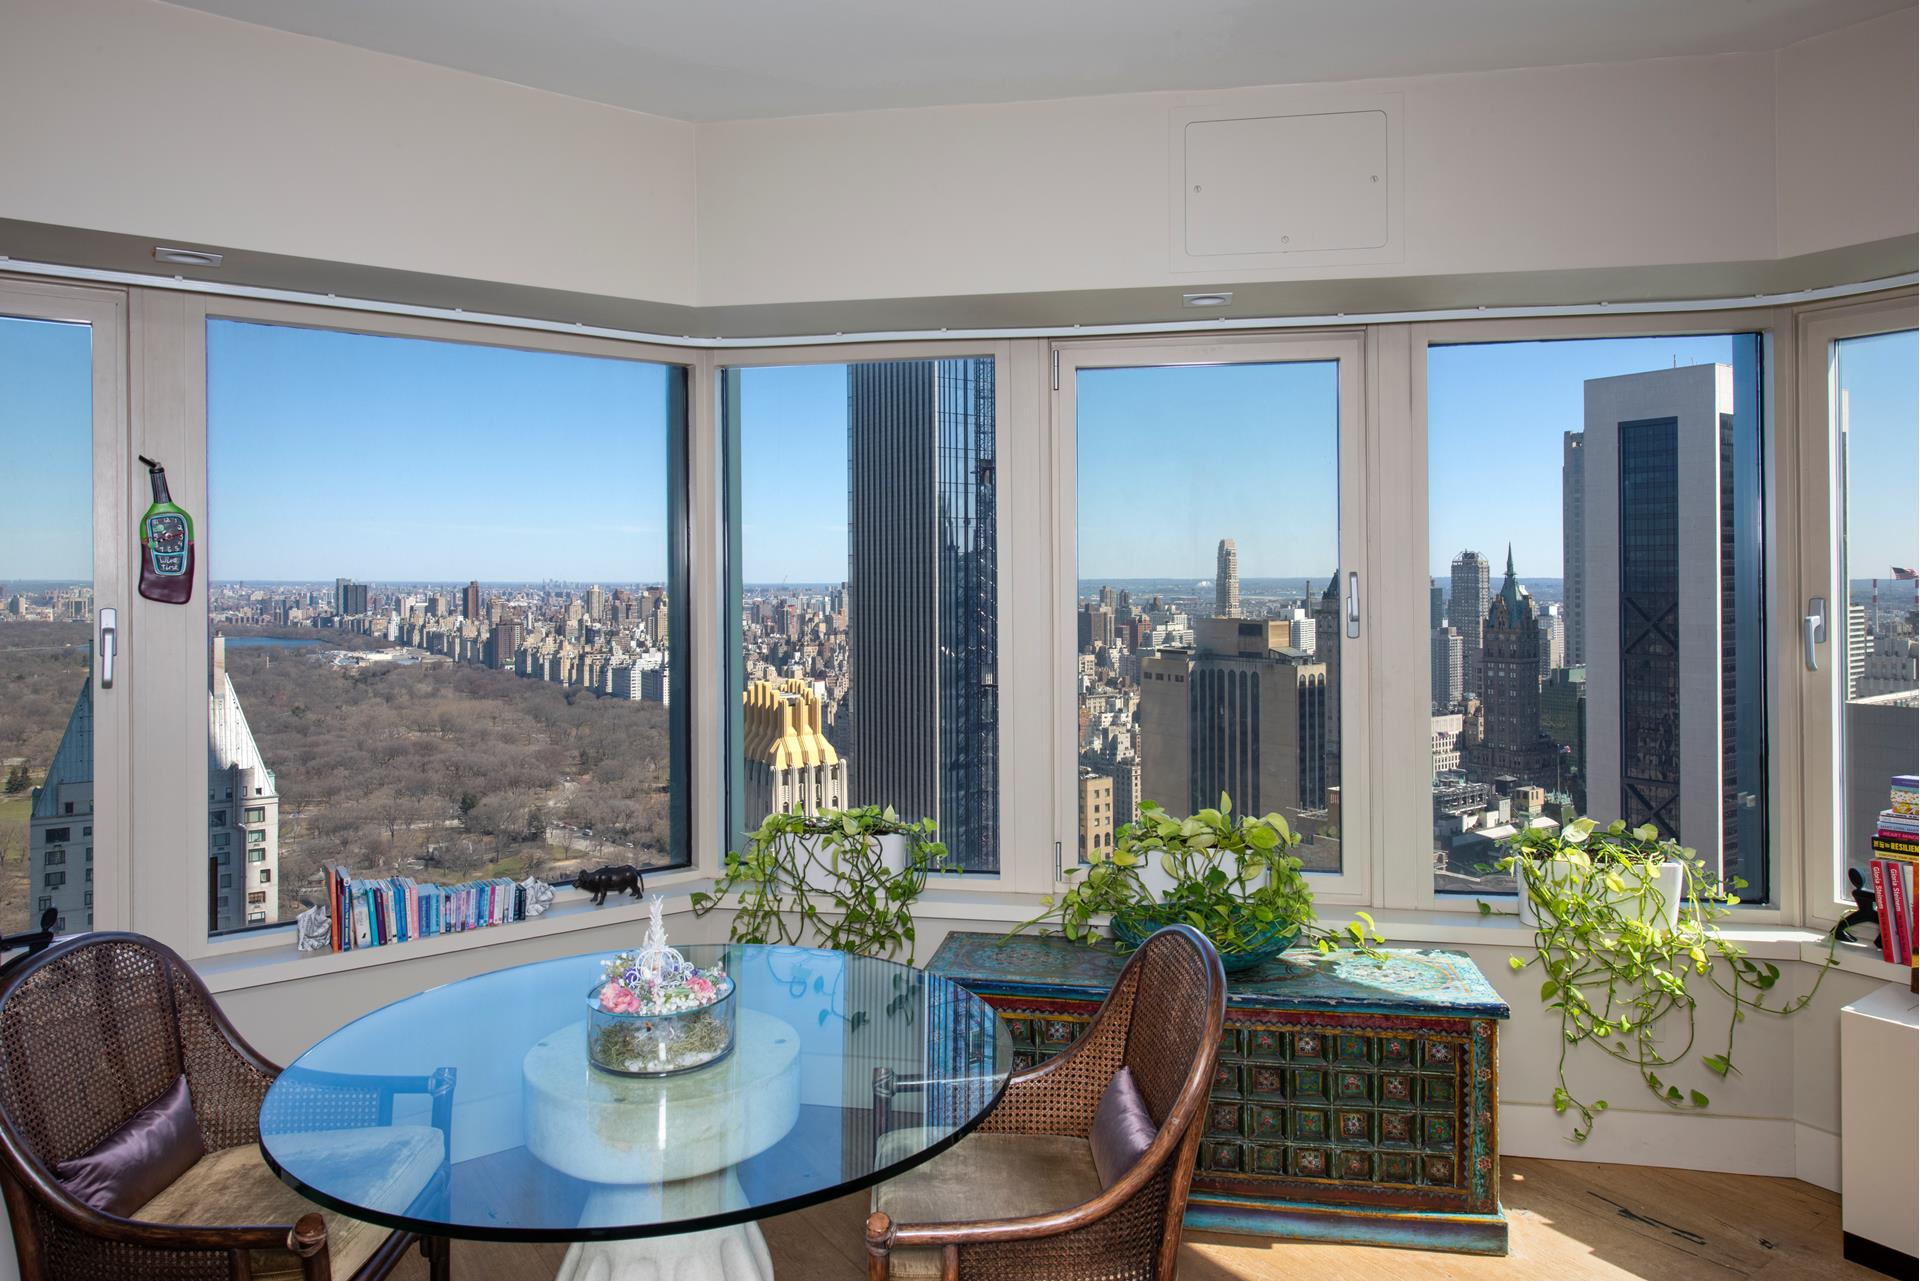 Breathtaking views from this one of a kind condo! 4802 is a meticulous property North/East/West views of the New York City Skyline, as far the eye can see .As you enter the foyer of this turn-key residence you are immediately struck by the beautiful oak   flooring. At 851 SF this 1 bedroom, 1.5 bathroom luxury condominium is drenched in light and offers an abundance of living and dining, the main bedroom has wonderful park views and lots of closets. The designer kitchen comes equipped with a Miele Fridge, Miele   Microwave, Imported German lacquer cabinets, granite countertops, Miele oven, Liebherr Dishwasher. The kitchen is completely open to the wonderful central park views. Cityspire is parallel to Billionares Row. It features a brand new fitness center, swimming   pool, sauna and steam room, playroom, palates room, conference room, brand new hallways with top of the line carpets and wall paper. garage in building. Be catered to by a premier concierge service, white glove doorman. Living at Cityspire is to experience   a wonderful life. Cityspire is located in Midtown West steps to Central Park, Columbus Circle, 5th Avenue, Theater District, Carnegie Hall & Time Warner Center. An absolute MUST SEE!!!!! assessment $ 125 ,reserve fund $50